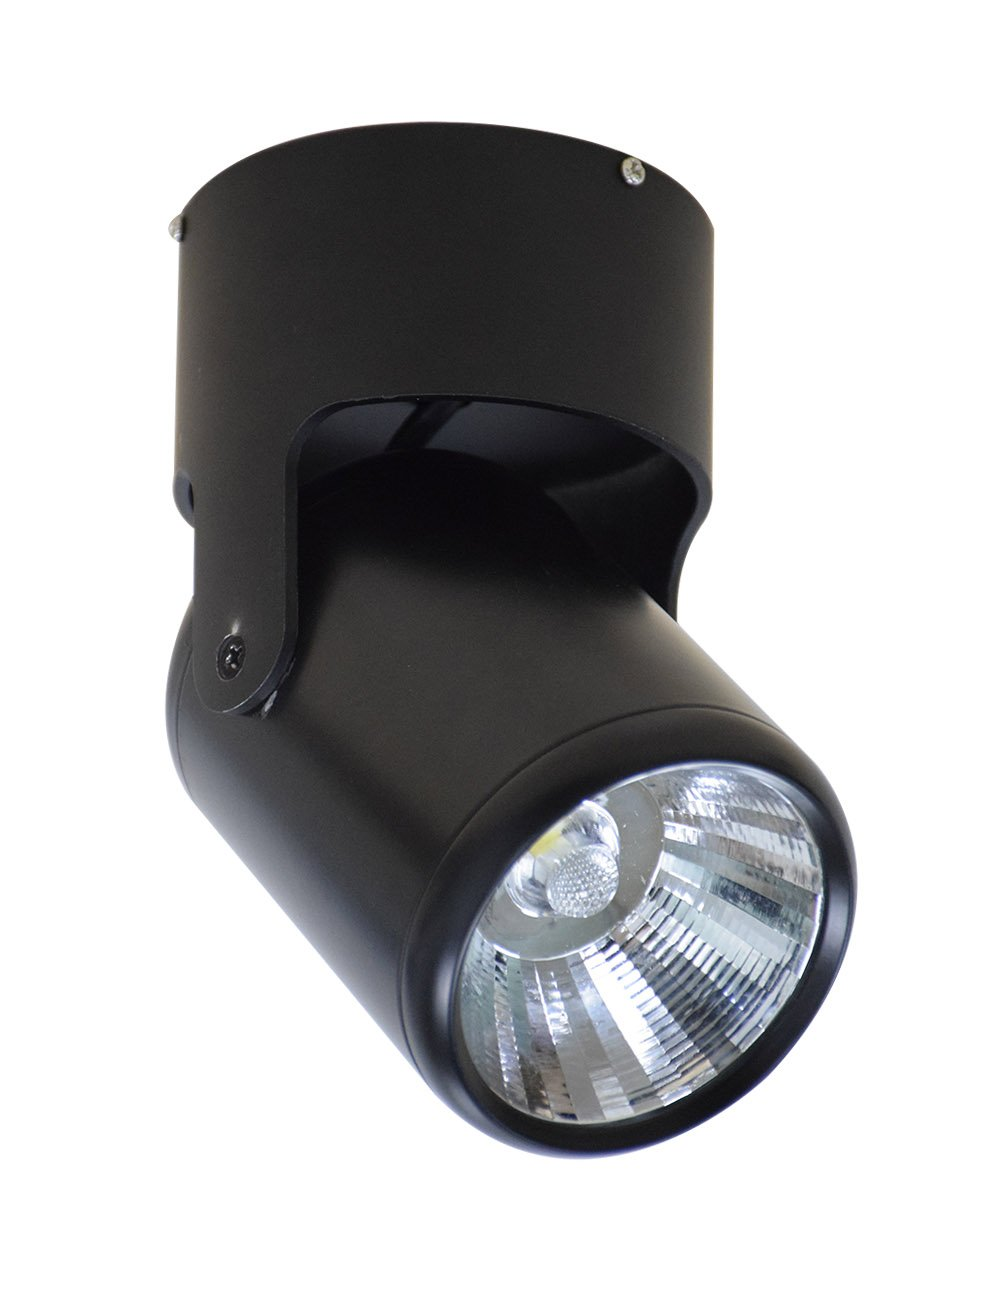 LED Indoor Ceiling Spotlight fixture Surface Mounted Accent Spot light Adjustable Wall Spot lighting,12W Black Aluminum Track Light Cool White, Not Dimmable, Not Wireless, AC 110-240V